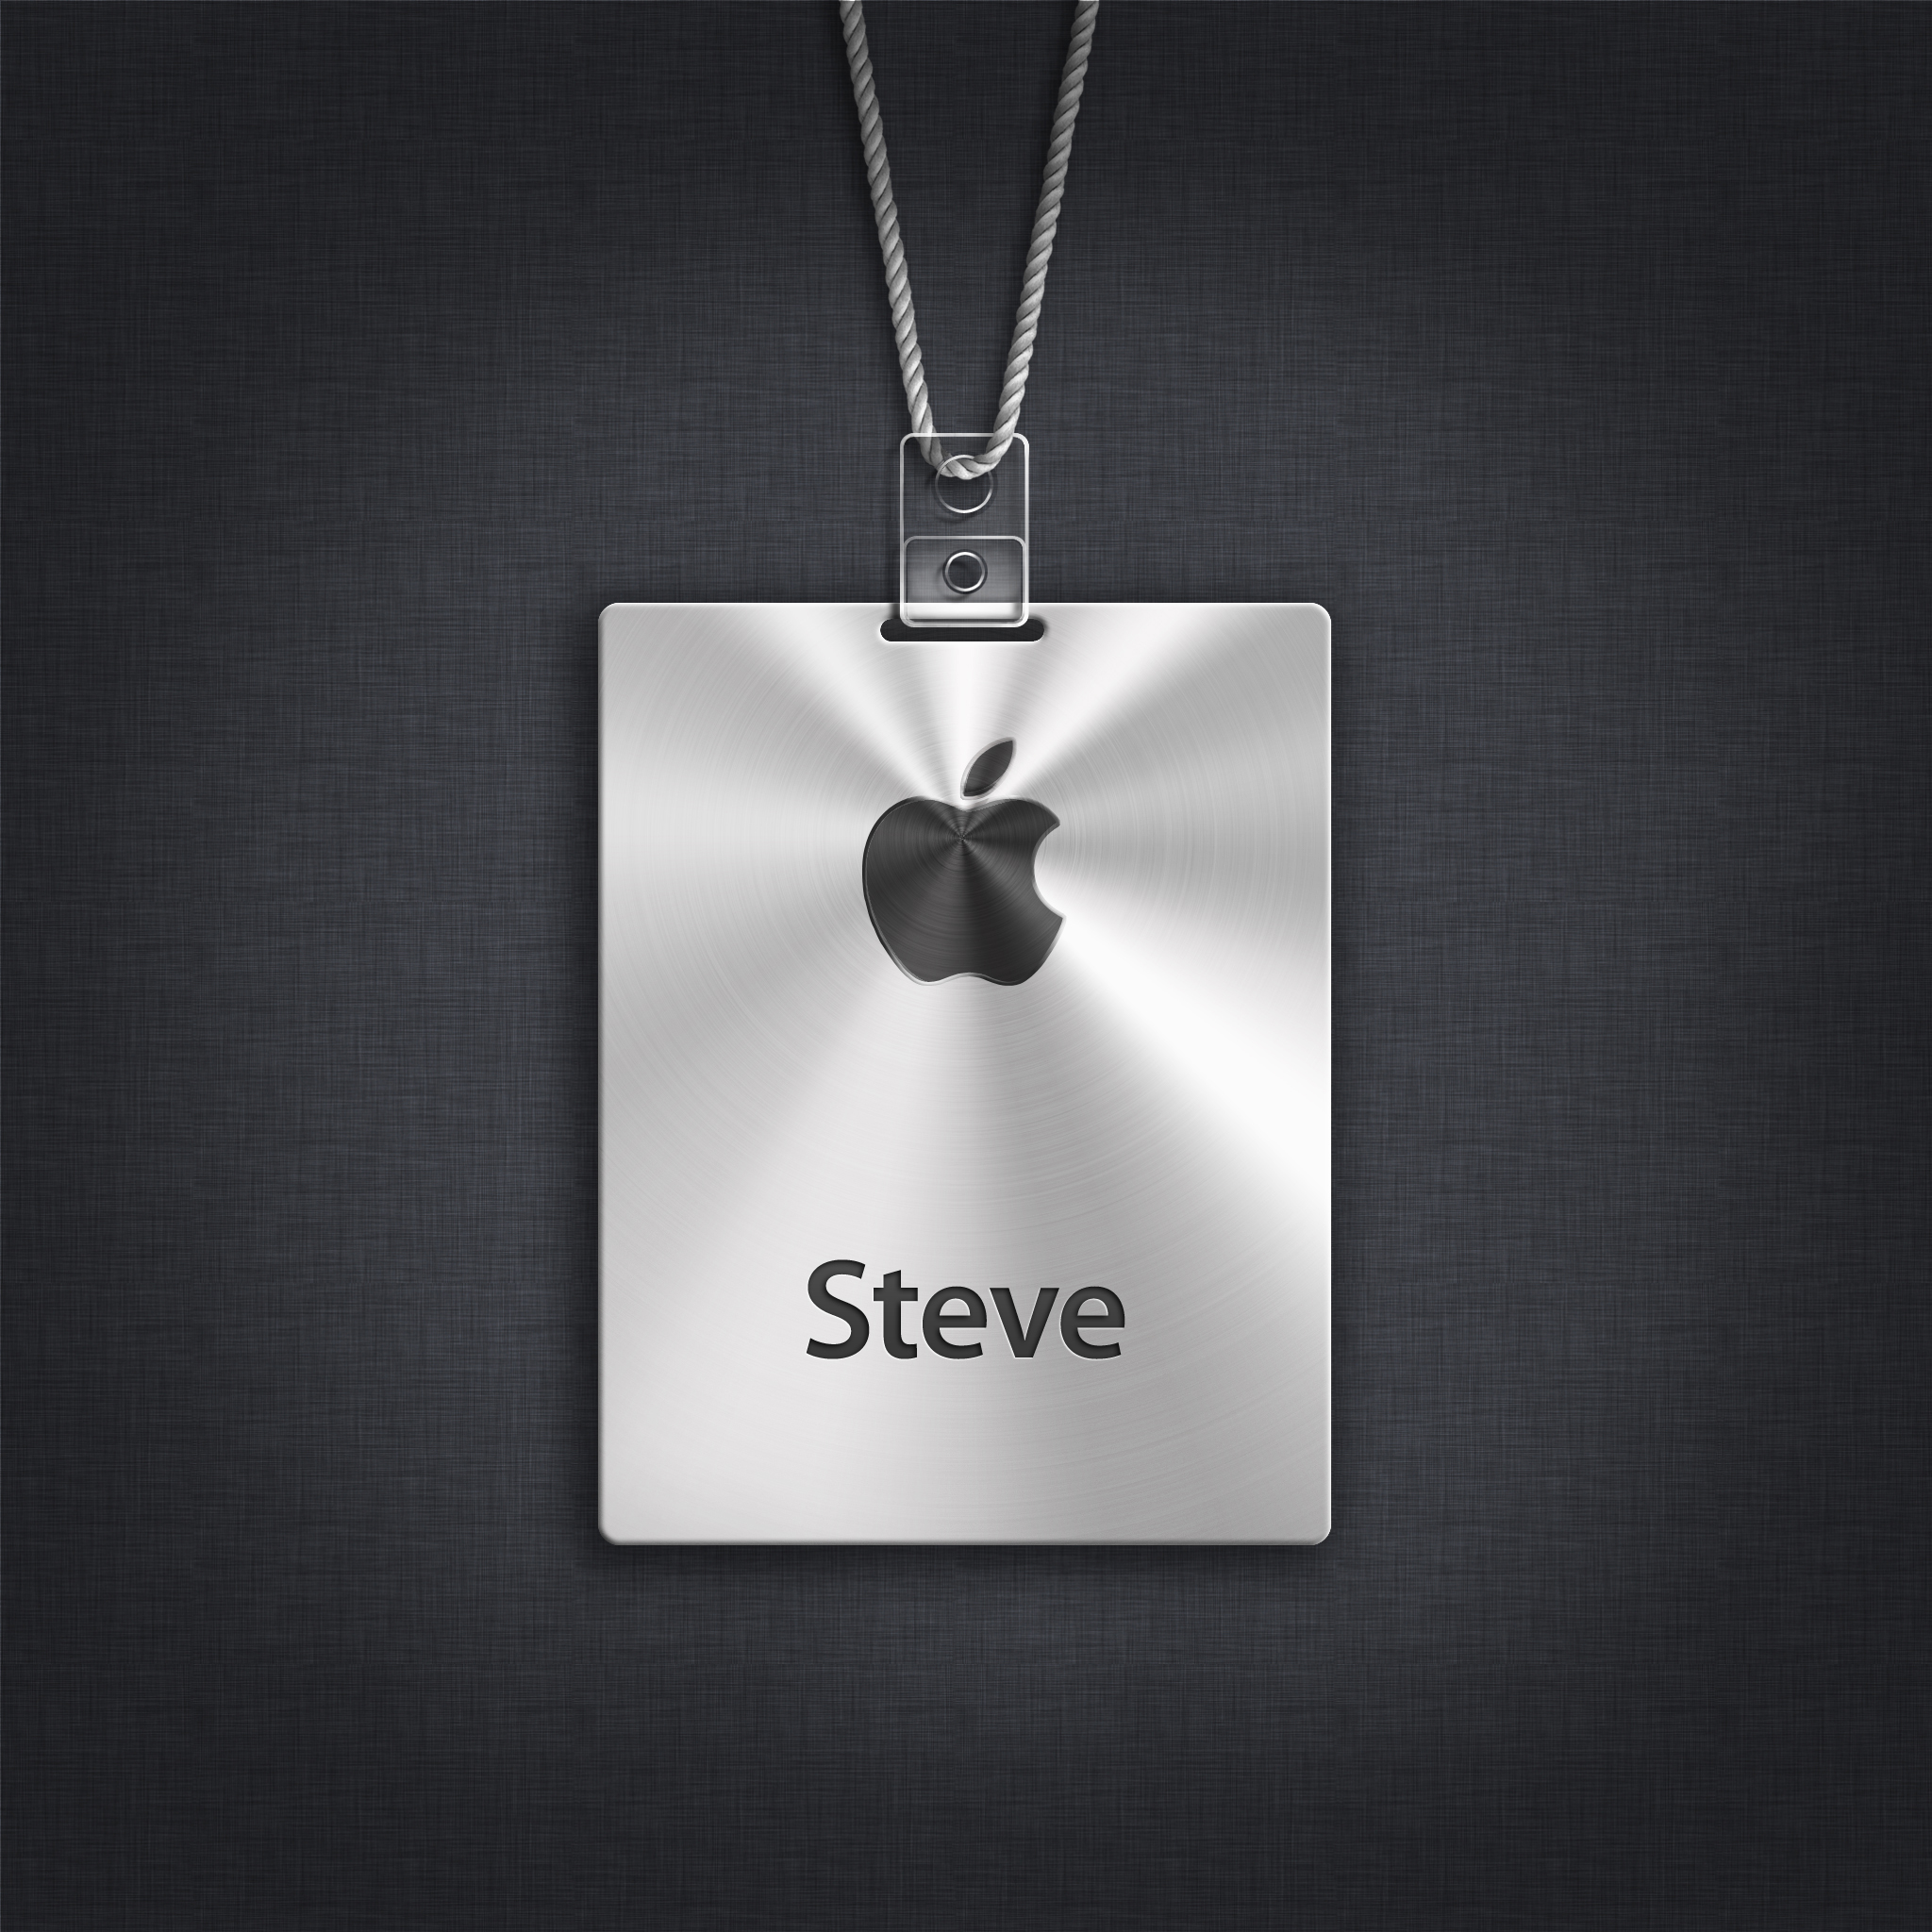 Apple Steve Store 3Wallpapers iPad Retina Apple Steve Store   iPad Retina